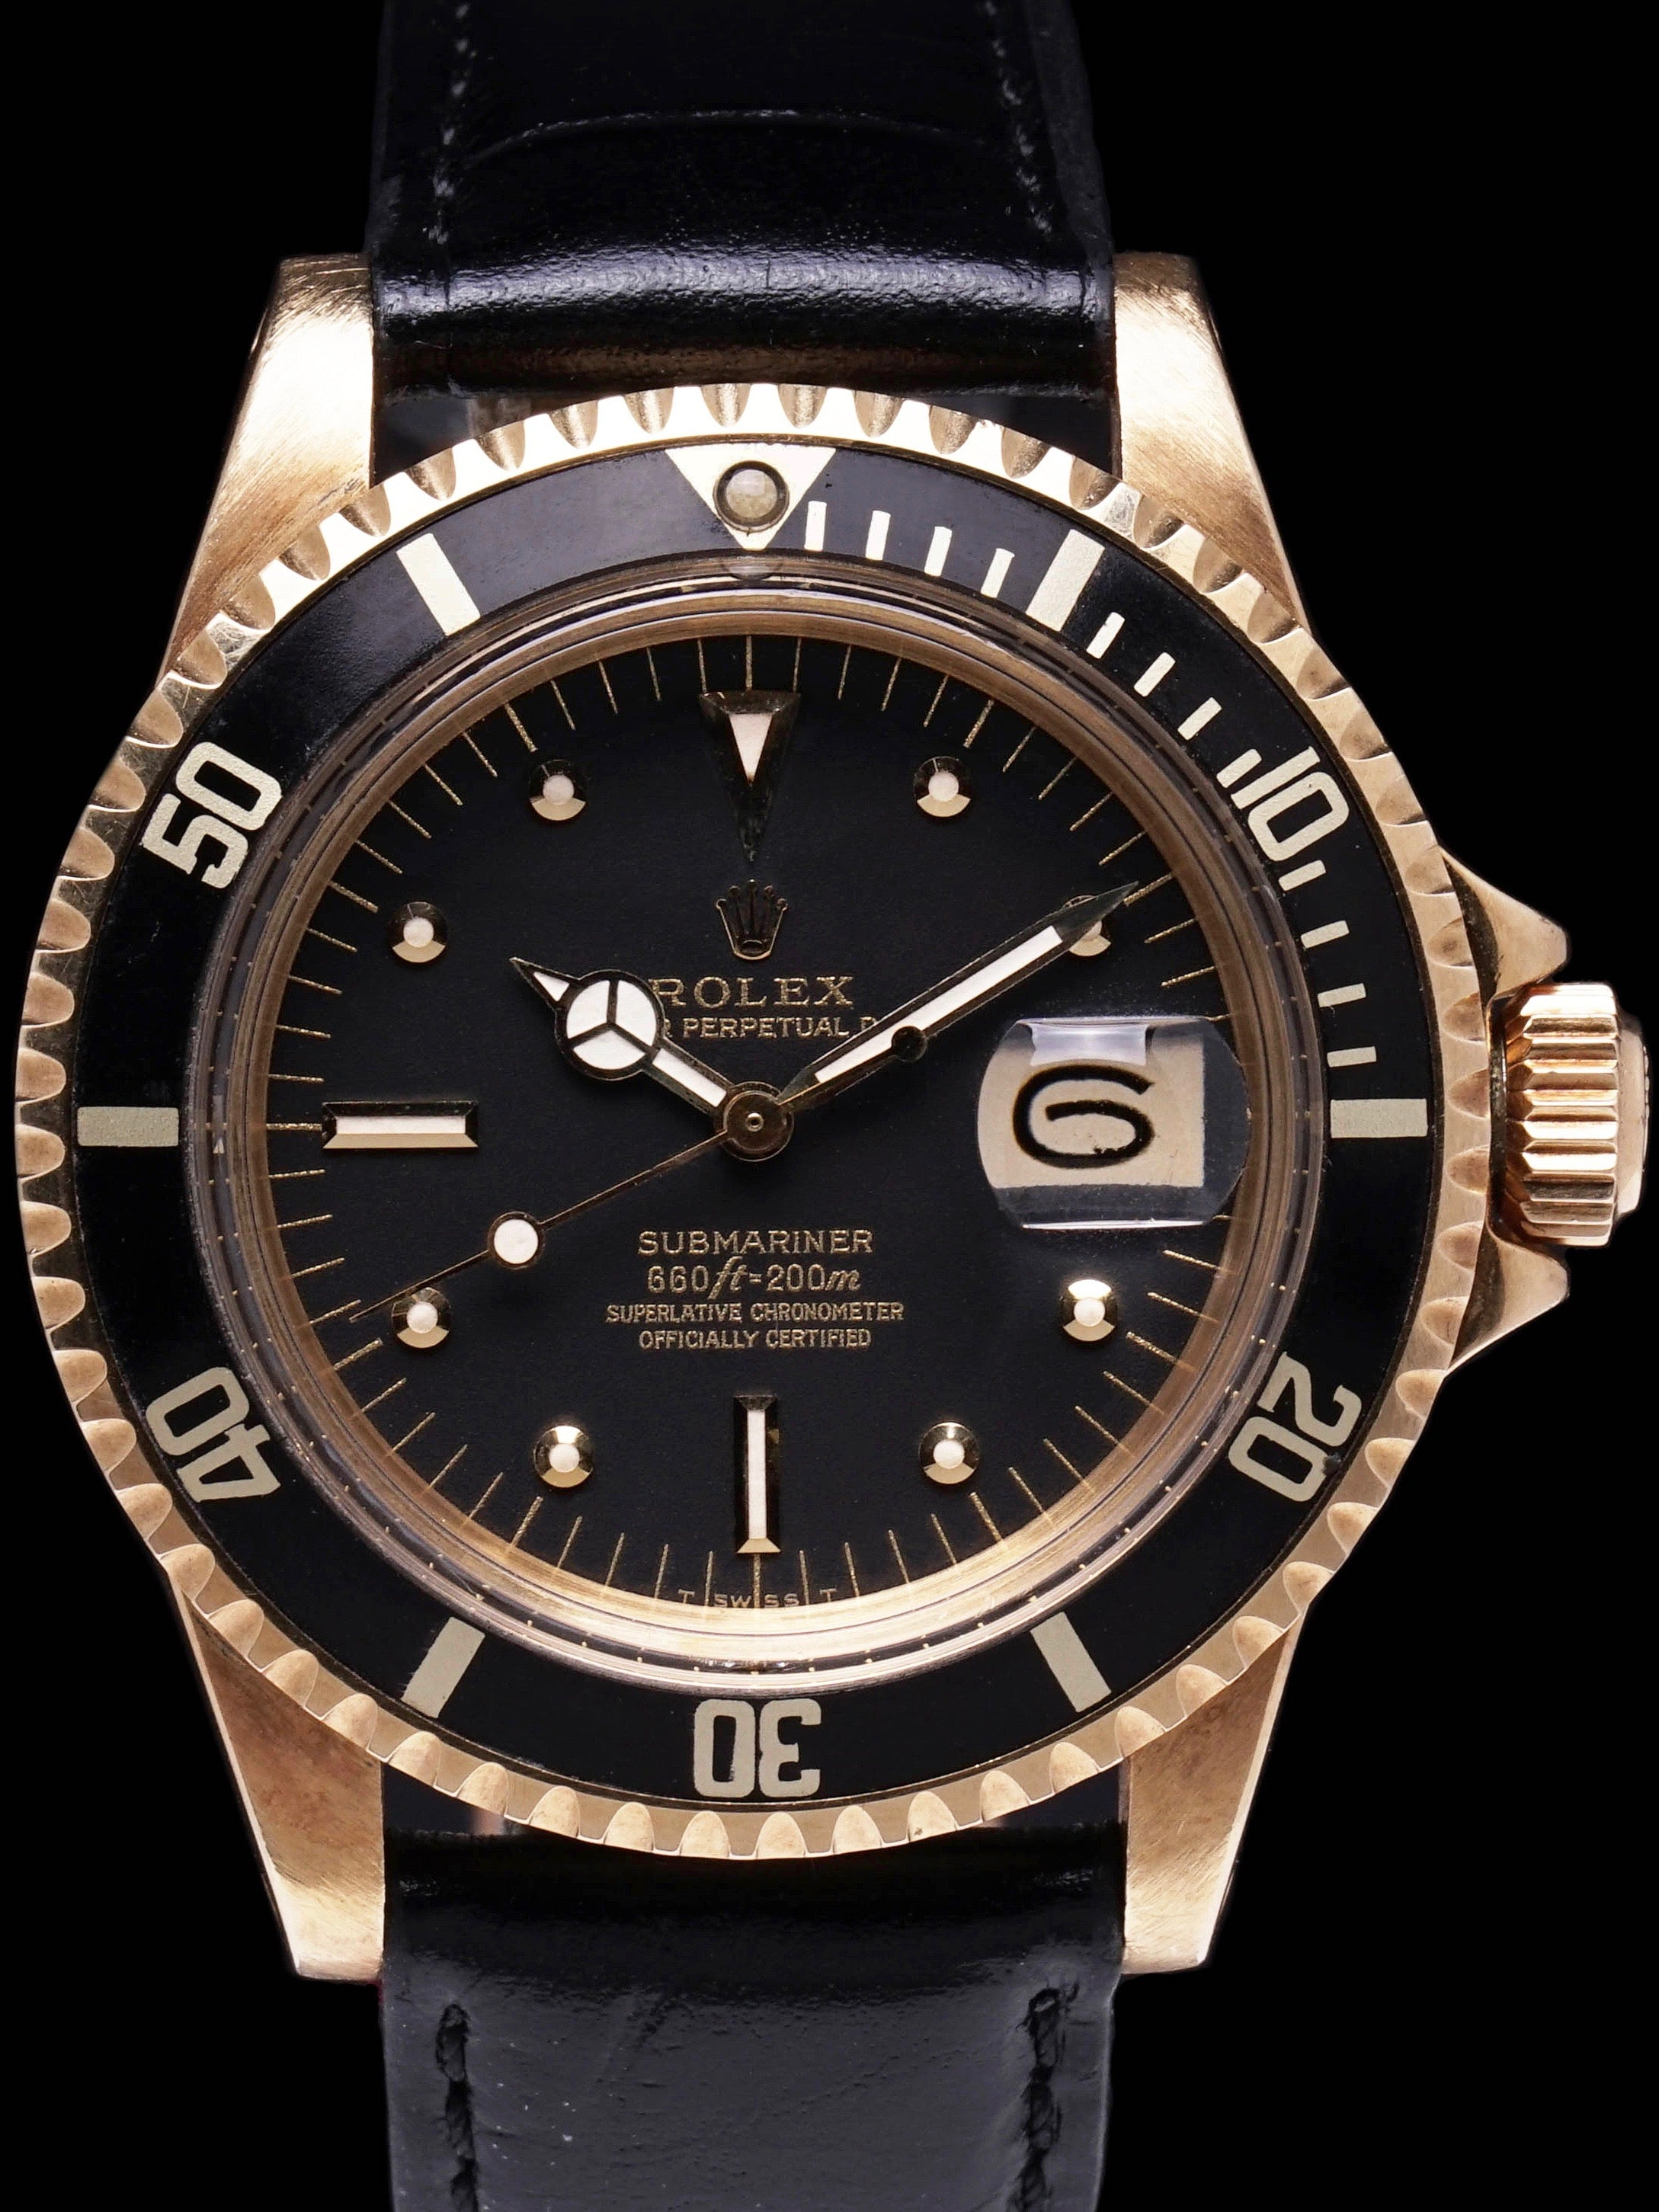 1973 Rolex Submariner Ref. 1680 18k YG